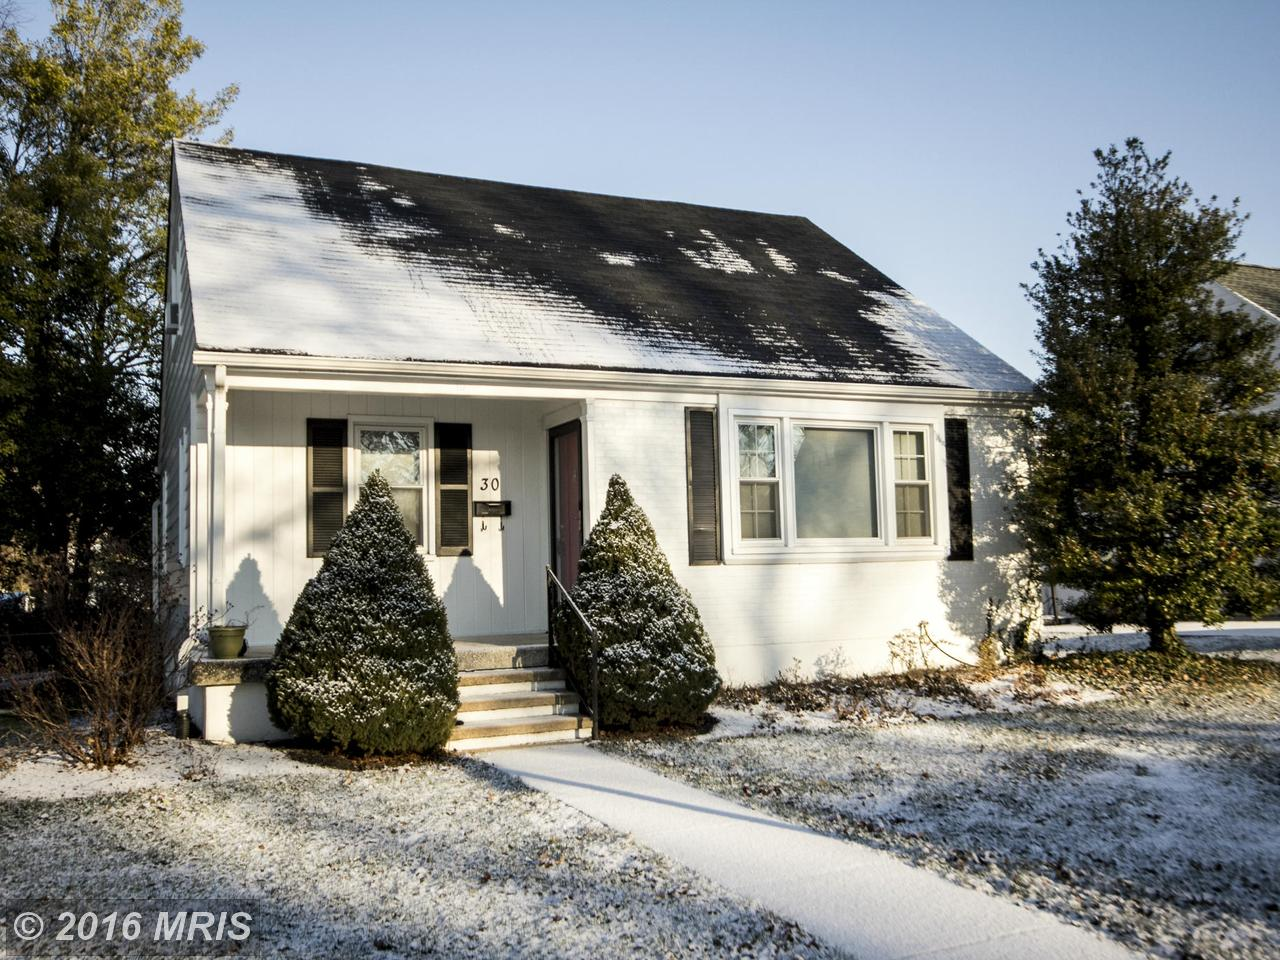 30 dublin dr lutherville timonium md 21093 for sale long foster